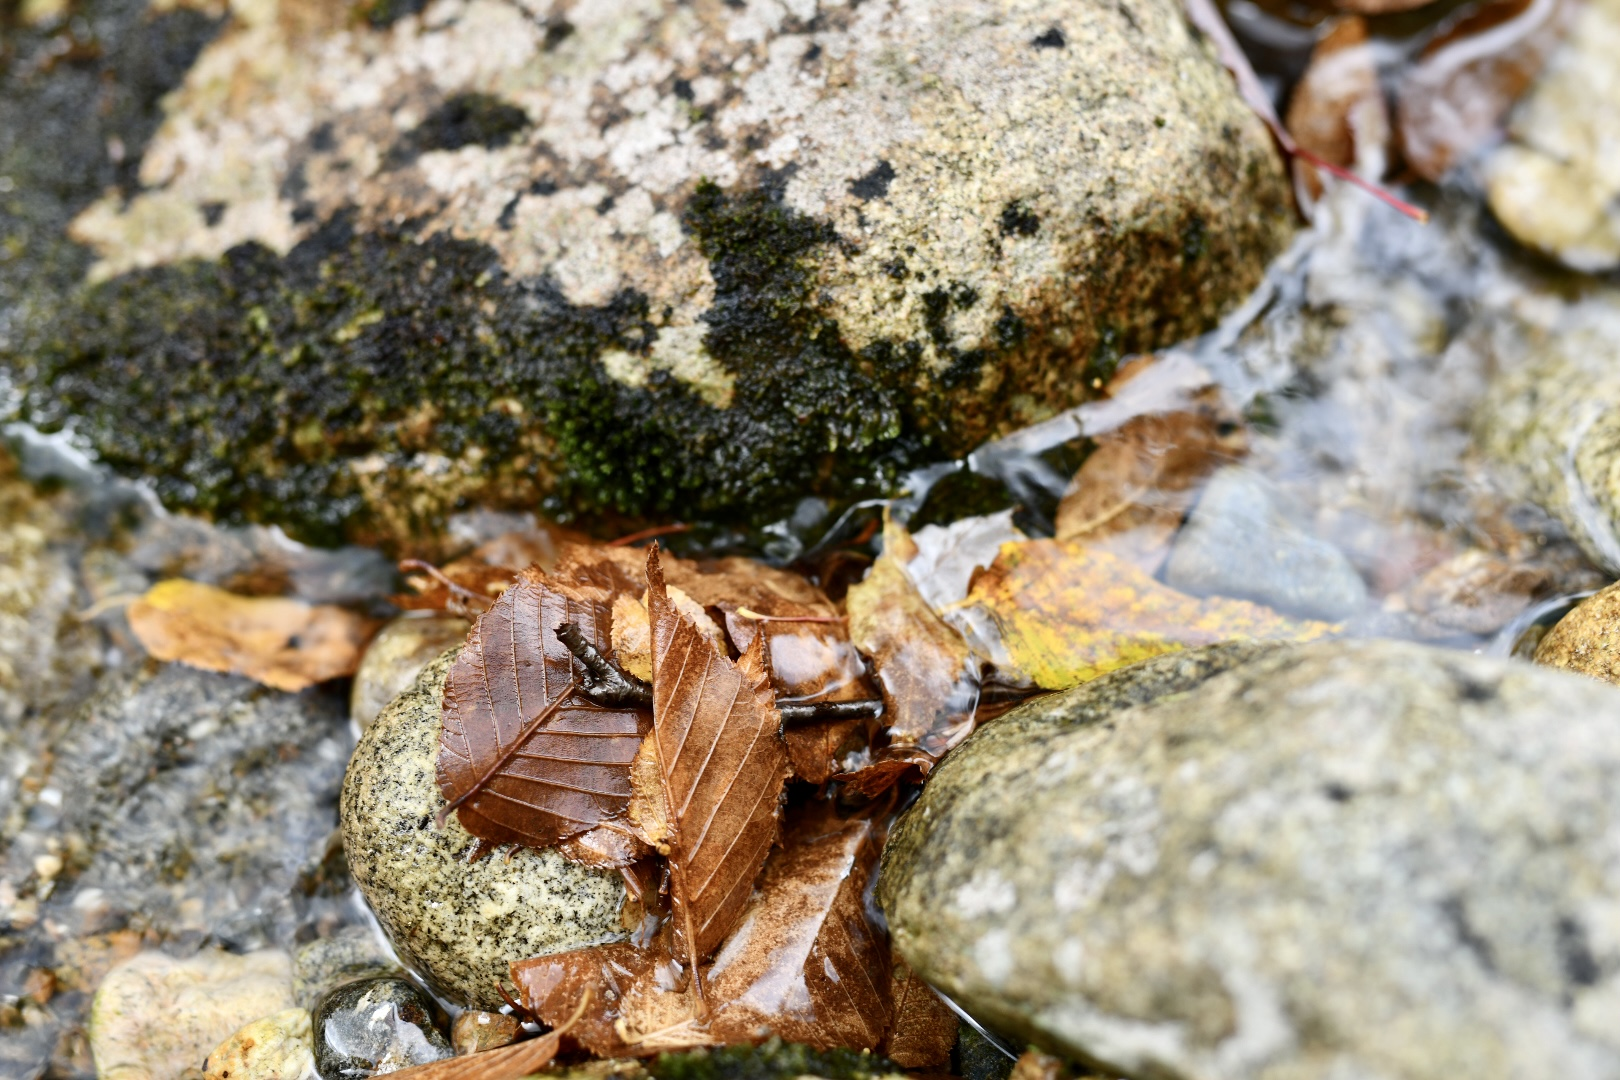 River rocks and autumn leaves. 2021. Taryn Okesson. Digital Photography. White Mountain National Forest, New Hampshire.